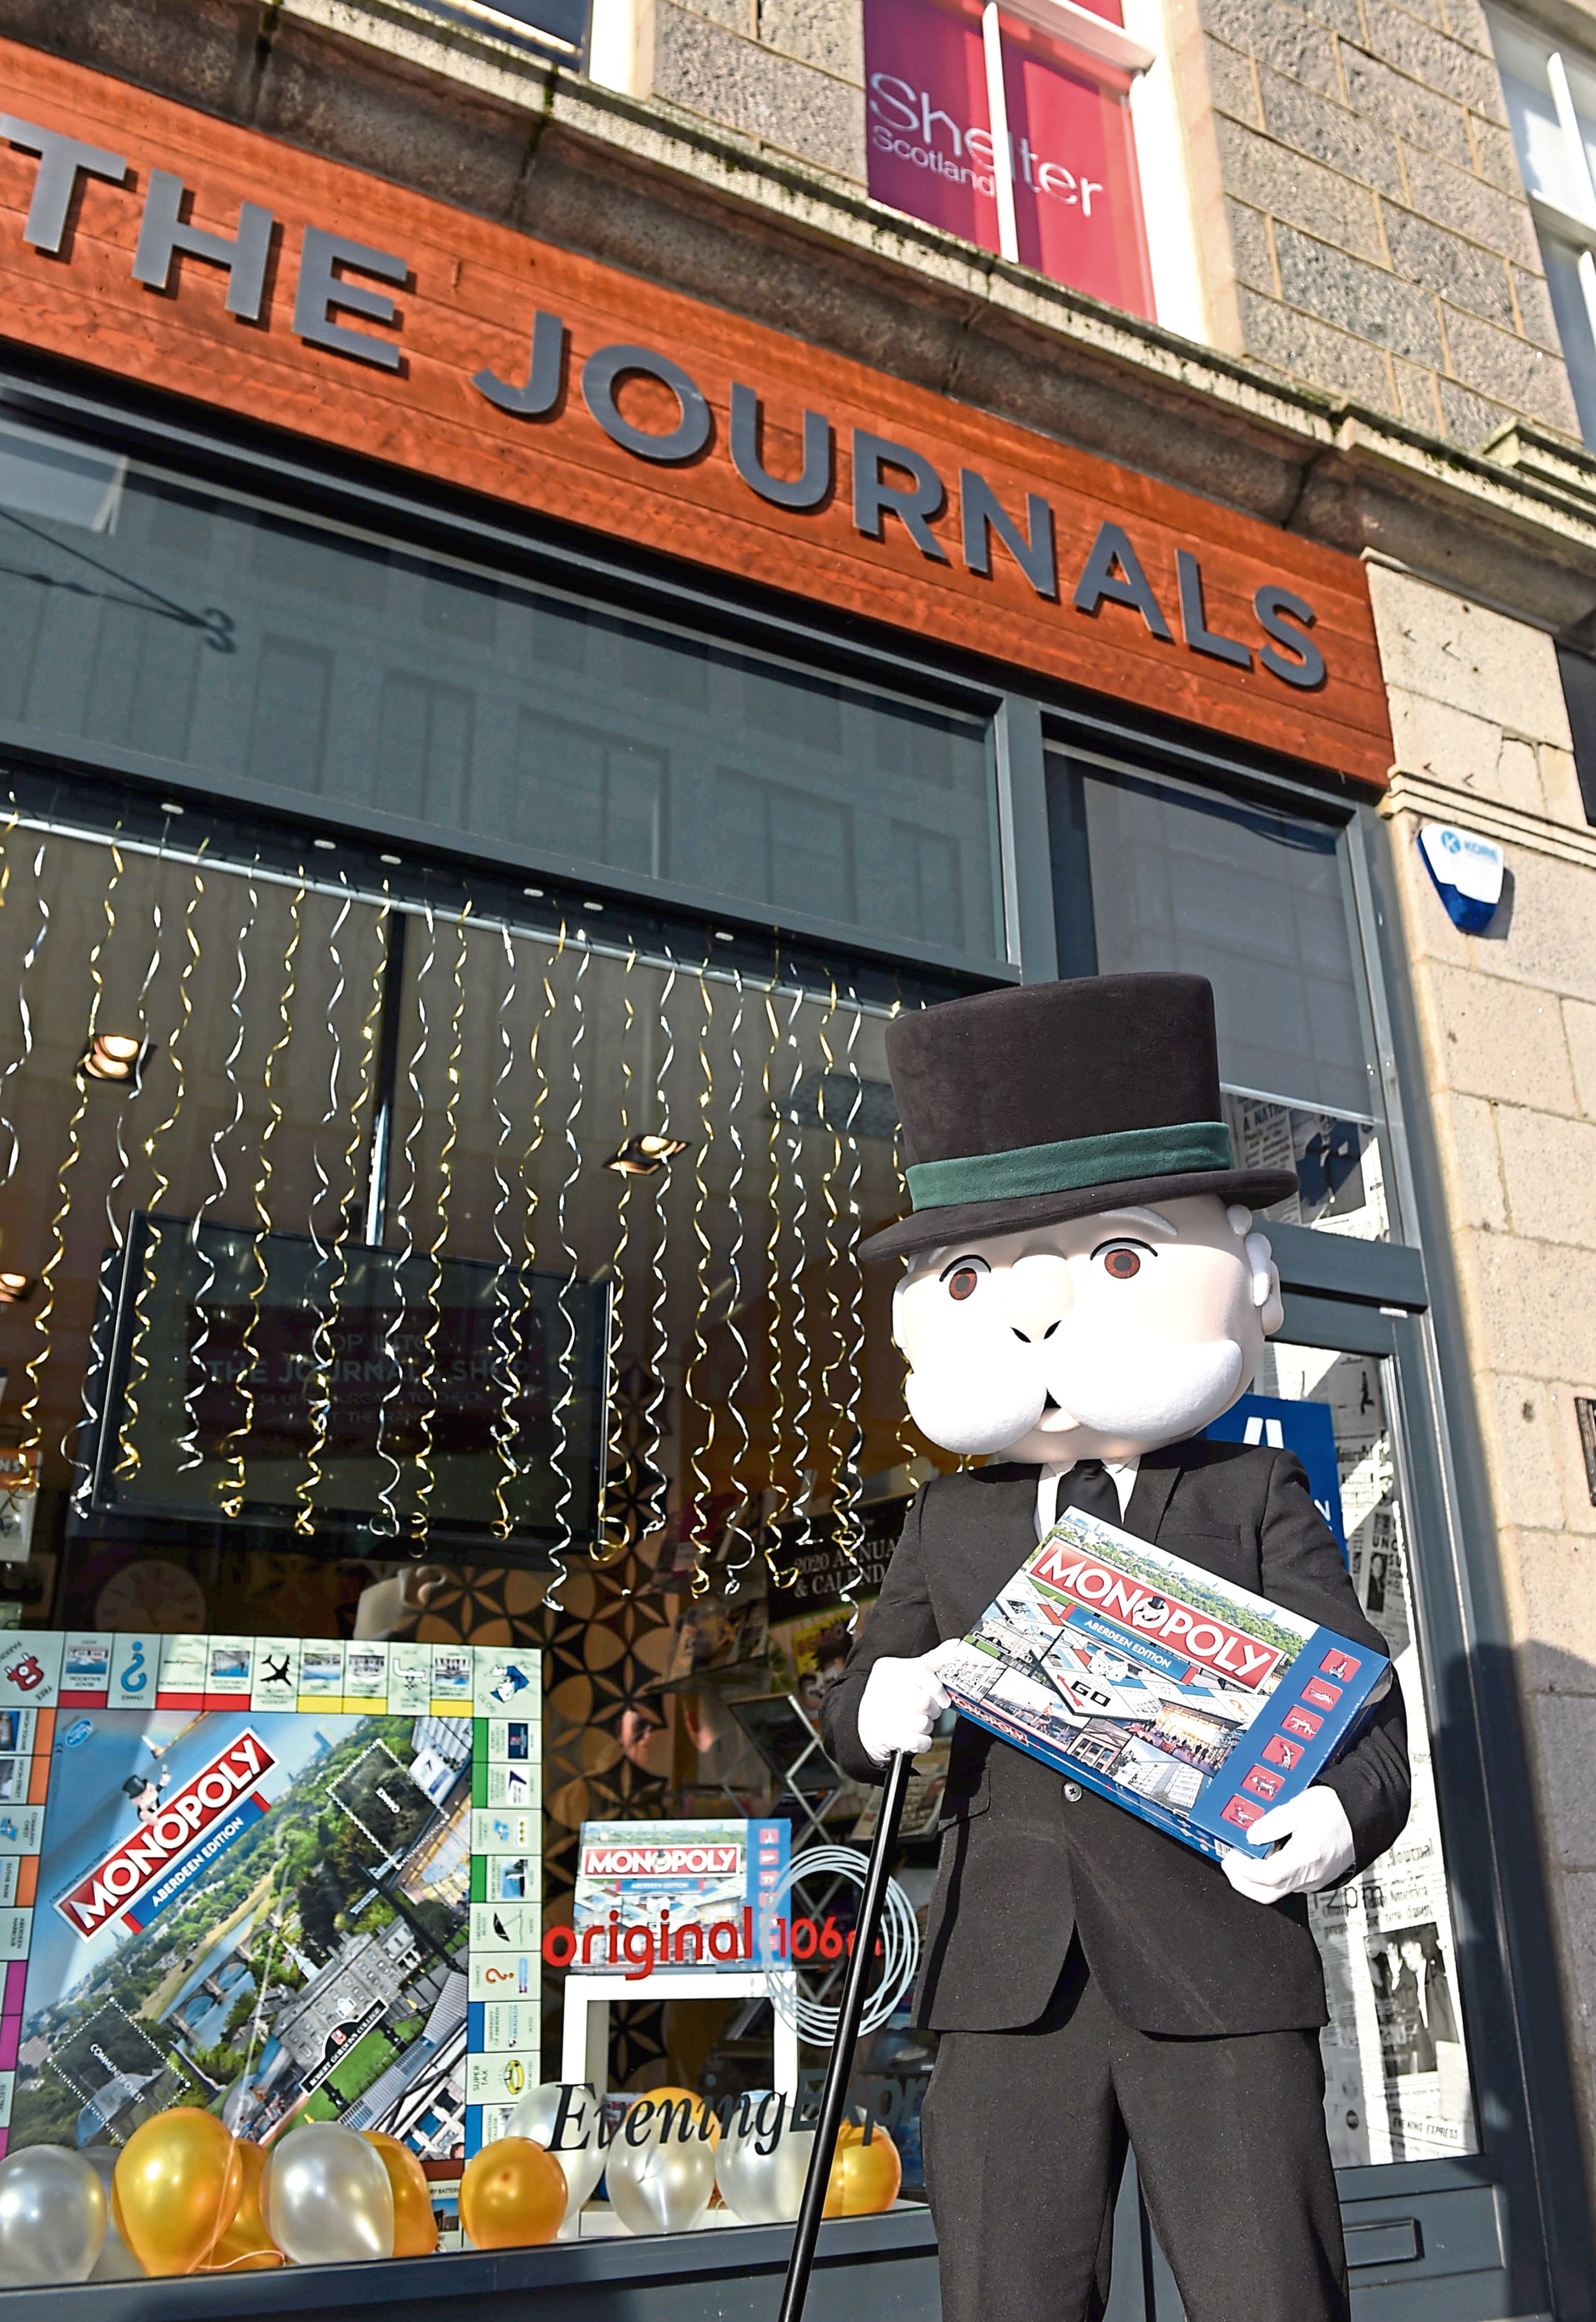 mr monopoly, the game's mascot, paid a visit to the aberdeen Journals shop on Schoolhill